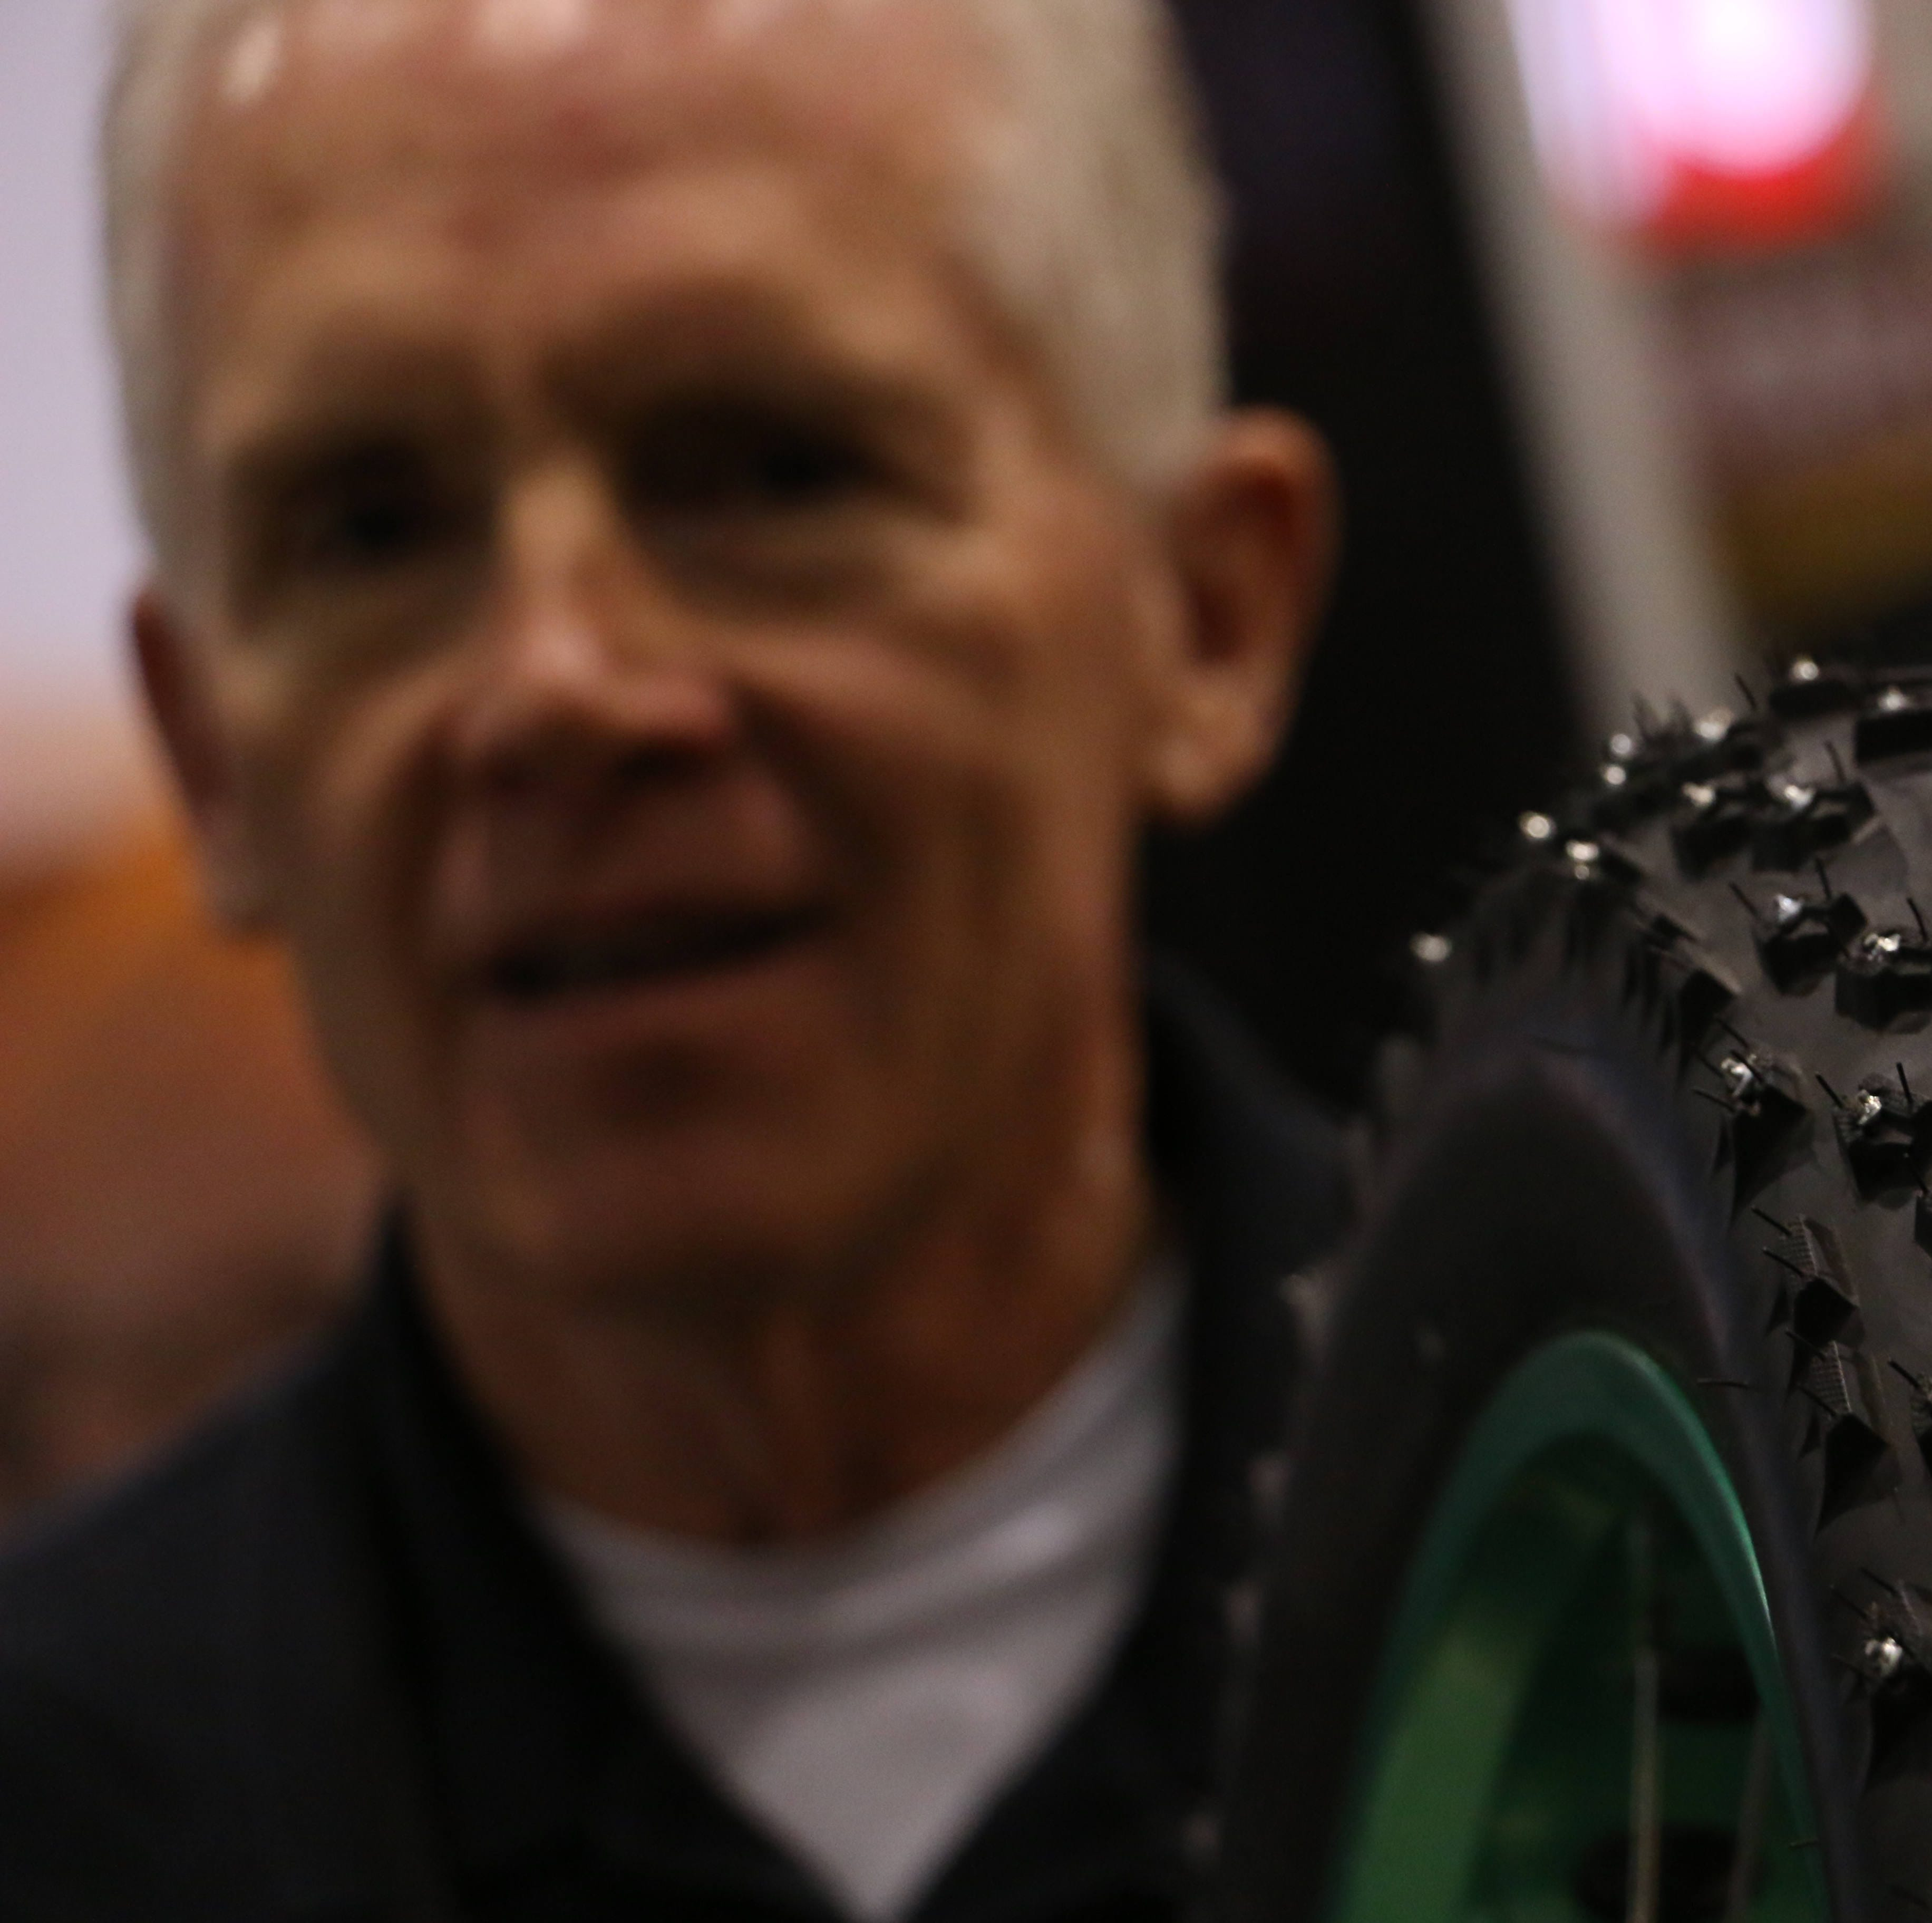 Interbike cancels 2019 Reno-Tahoe show, reassessing future